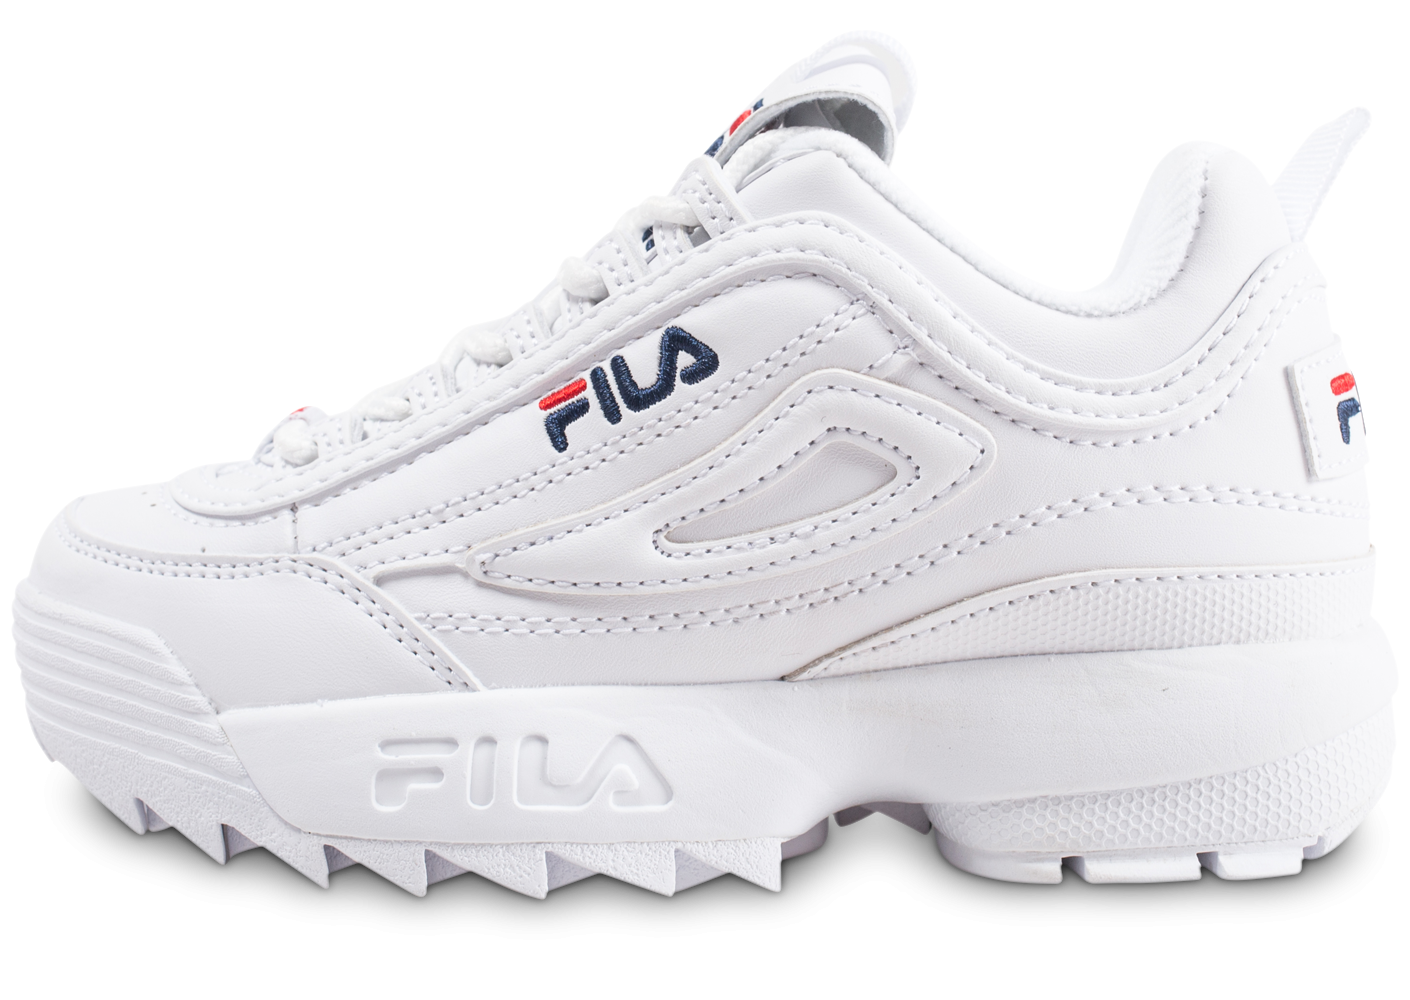 aliexpress save up to 80% watch Fila Disruptor 2 enfant blanche